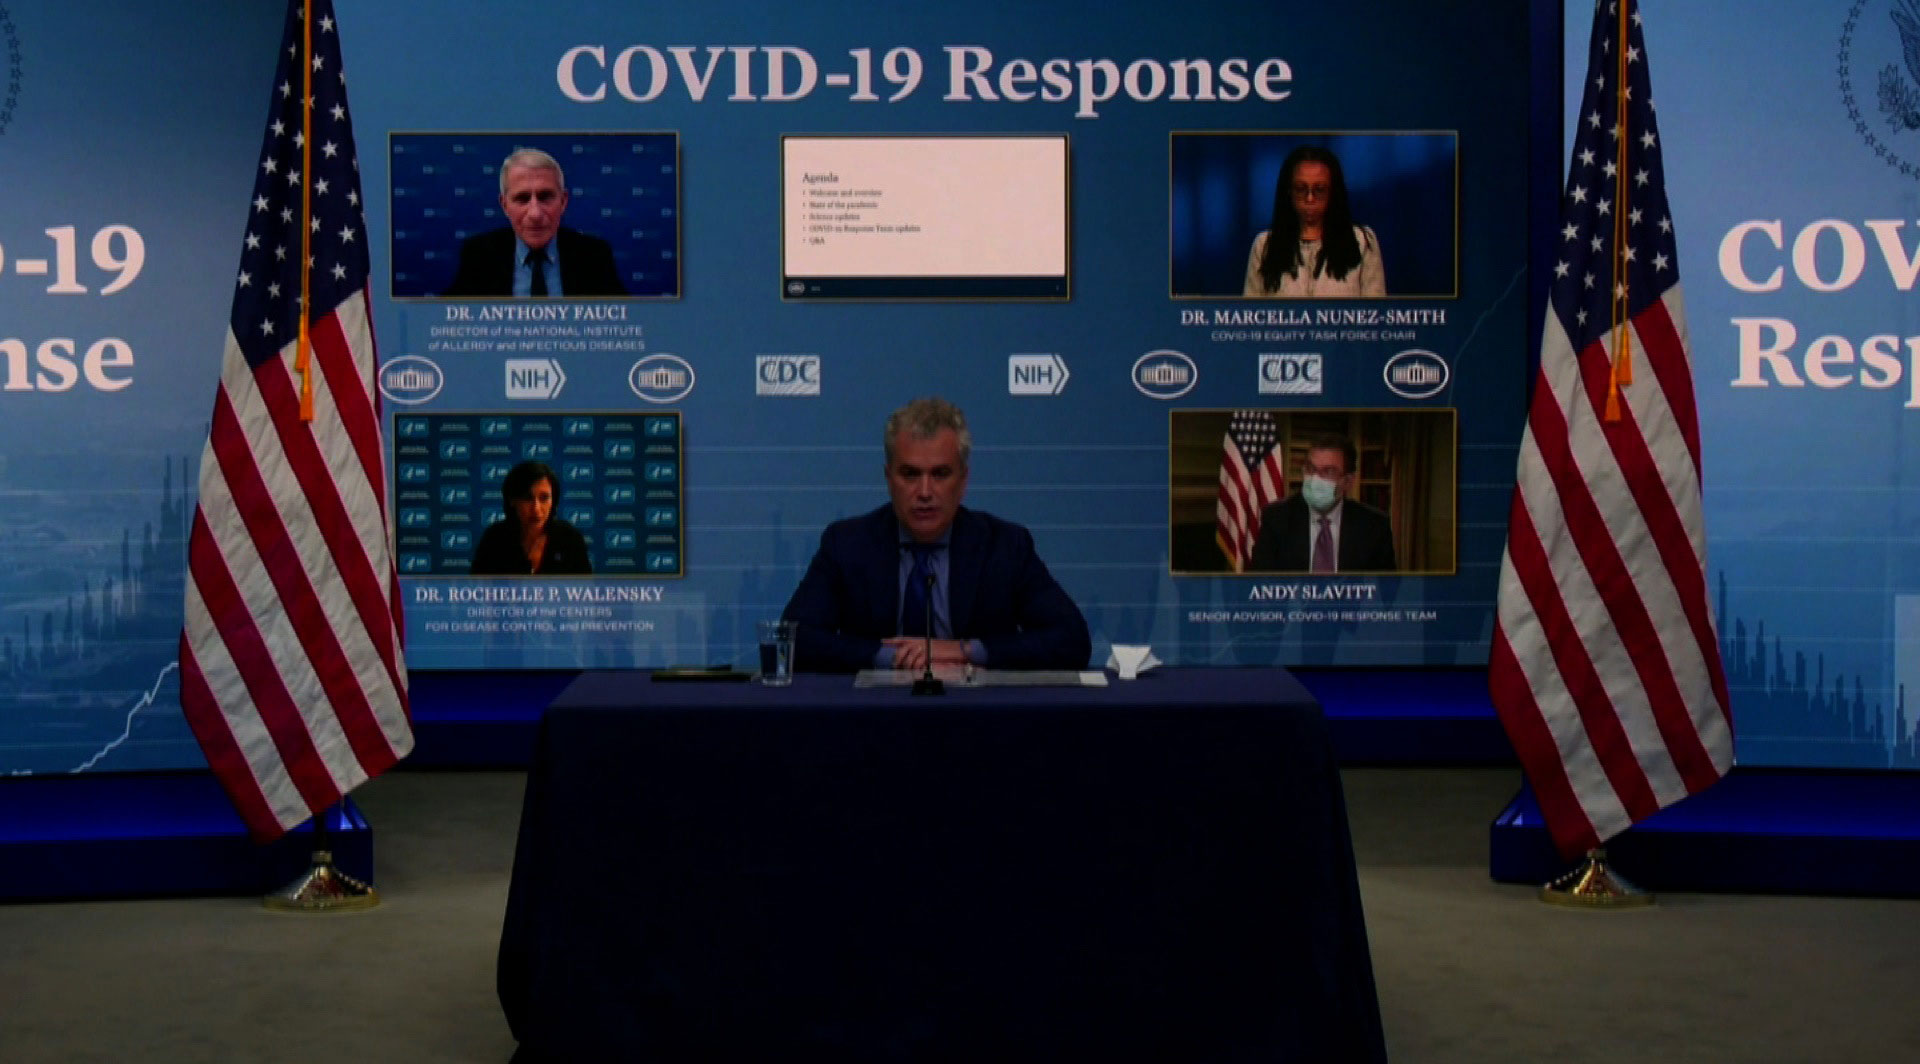 The White House Covid-19 Response Team during a briefing on January 27.